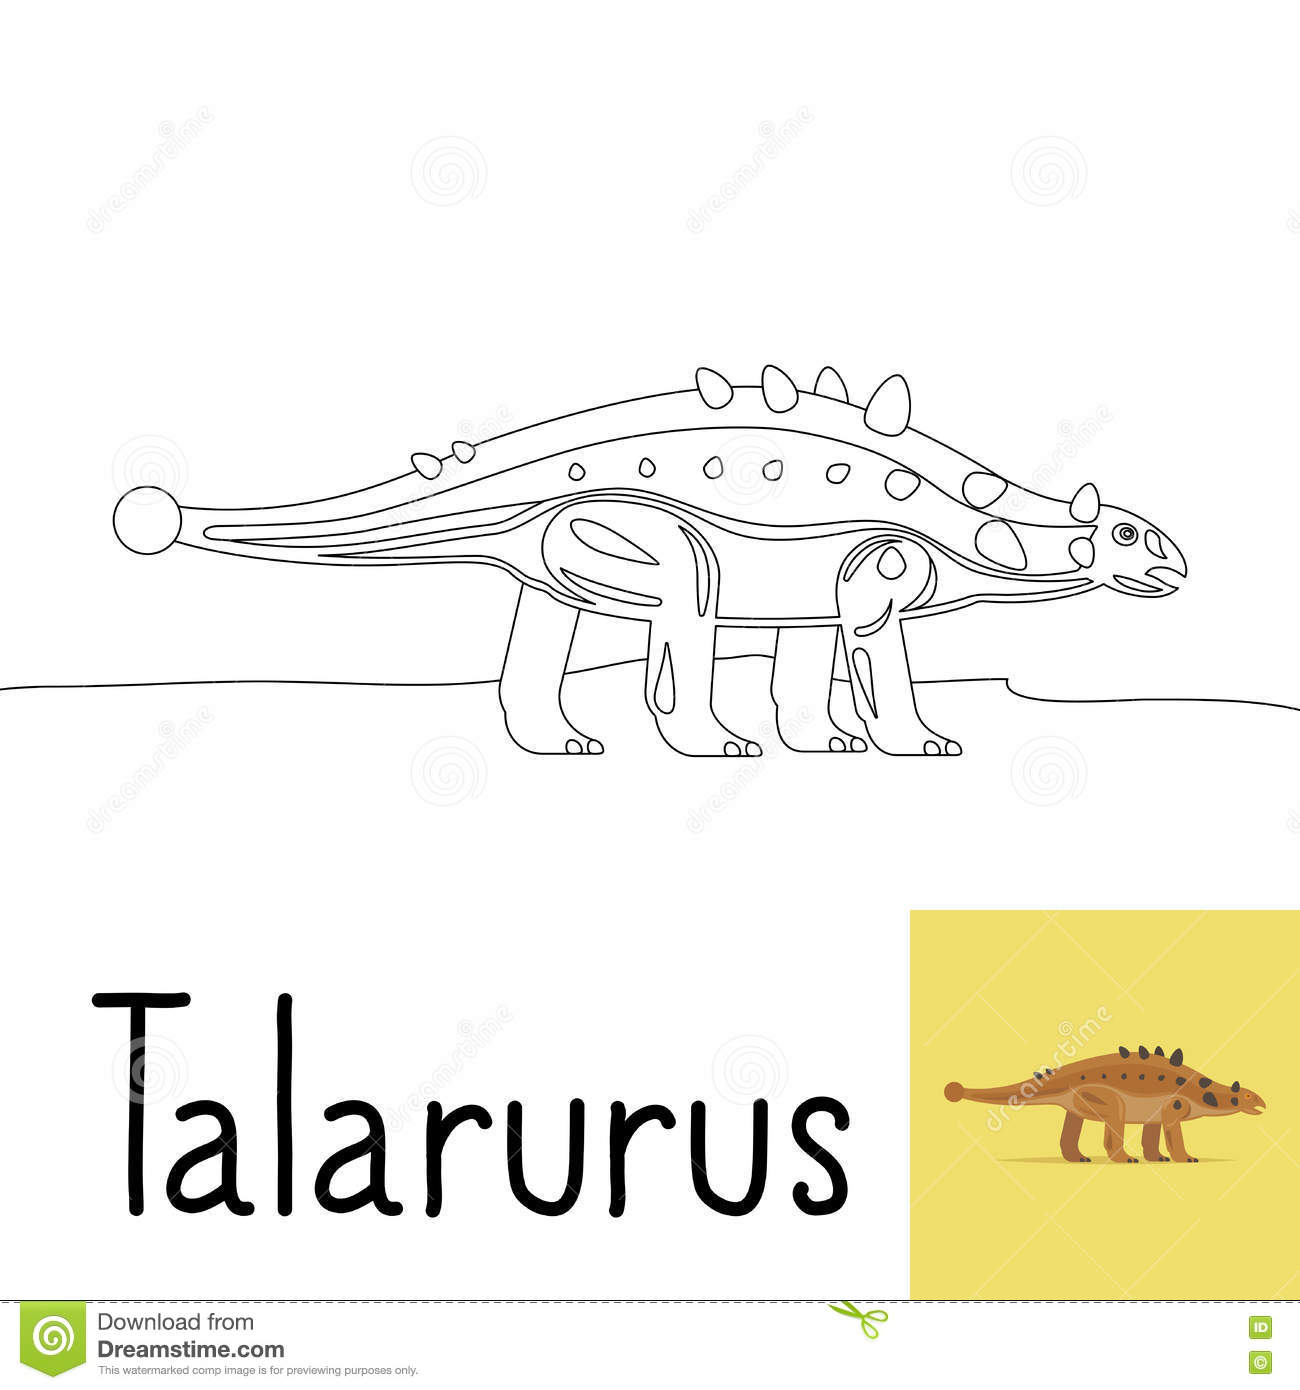 coloring page kids talarurus dinosaur colored preview vector illustration